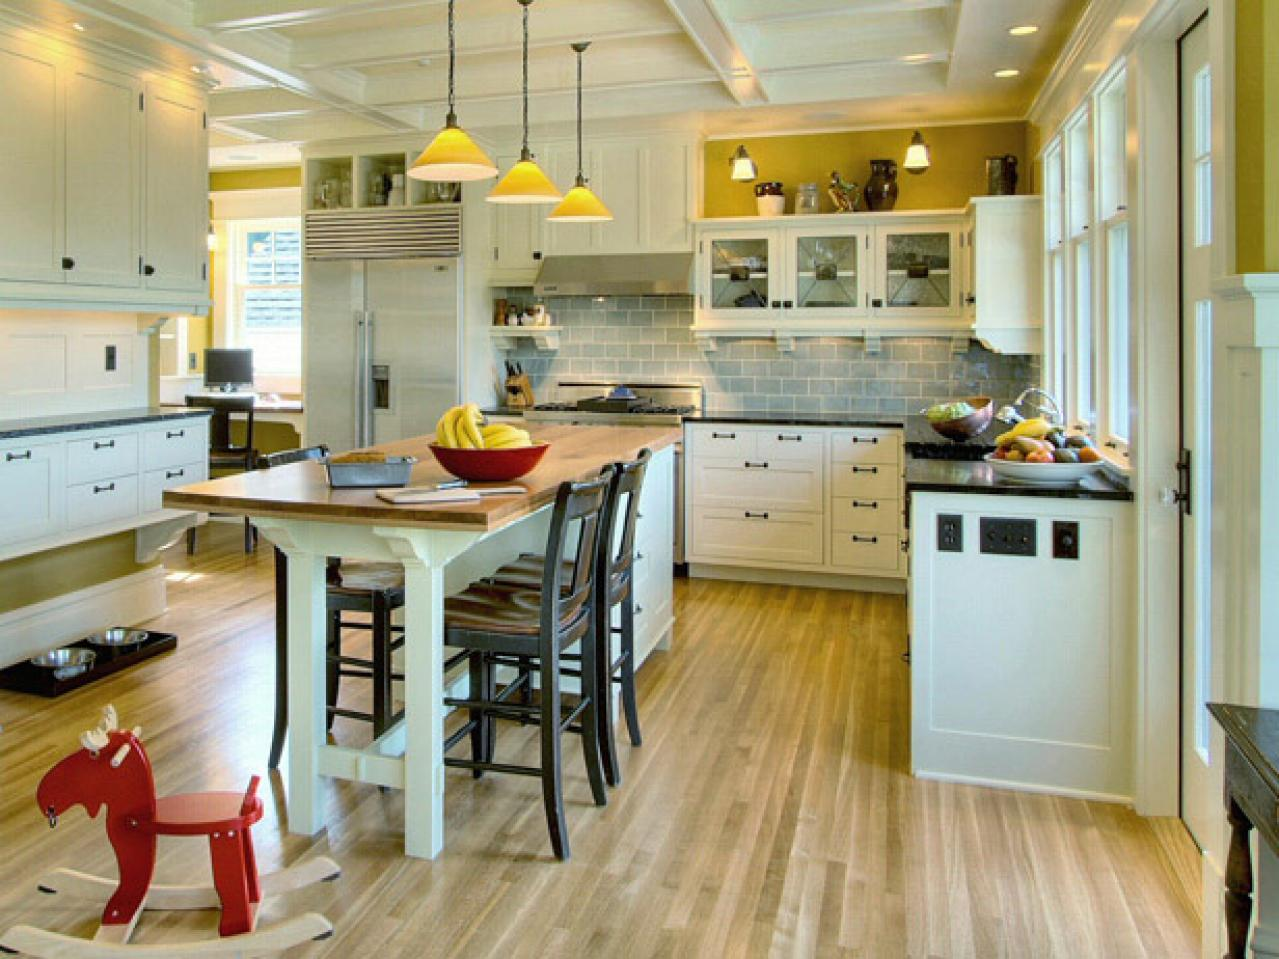 10 kitchen islands kitchen ideas design with cabinets islands backsplashes hgtv Kitchen colour design tips